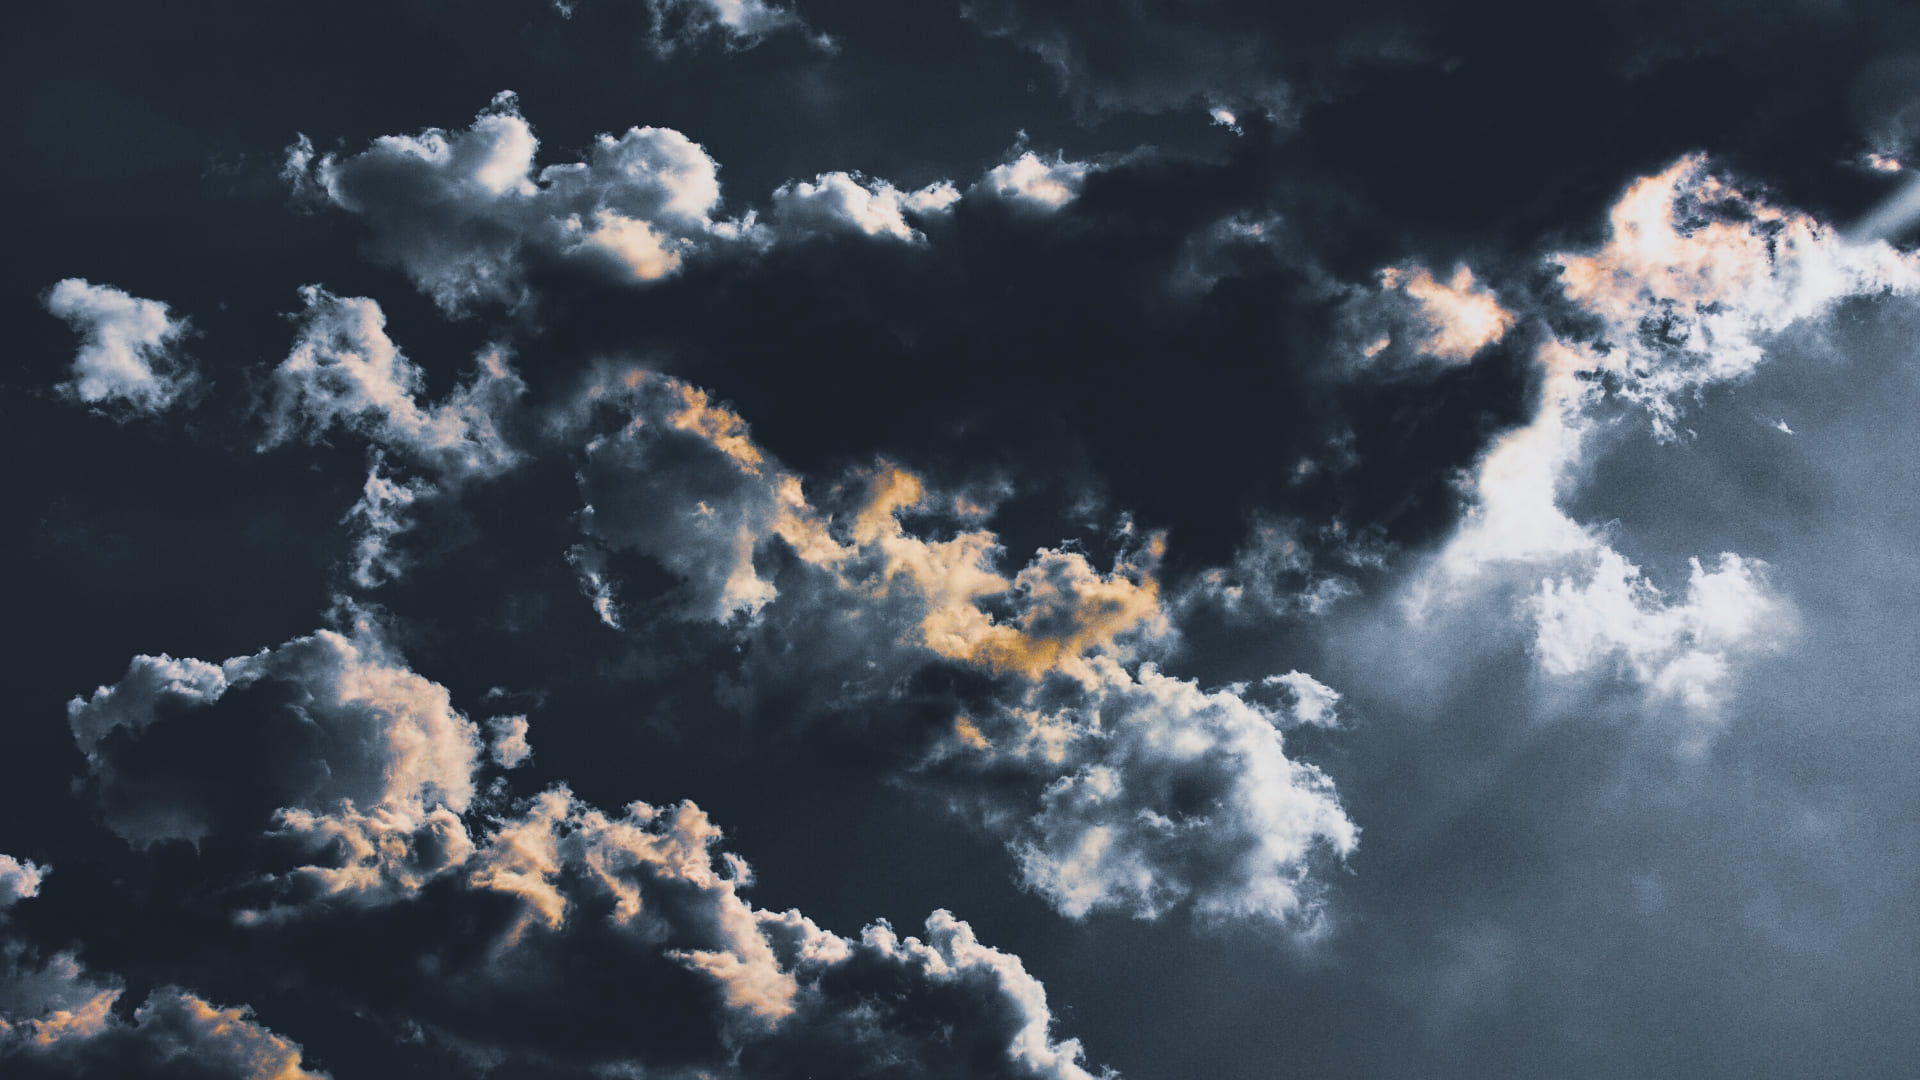 Cloudy sky pic